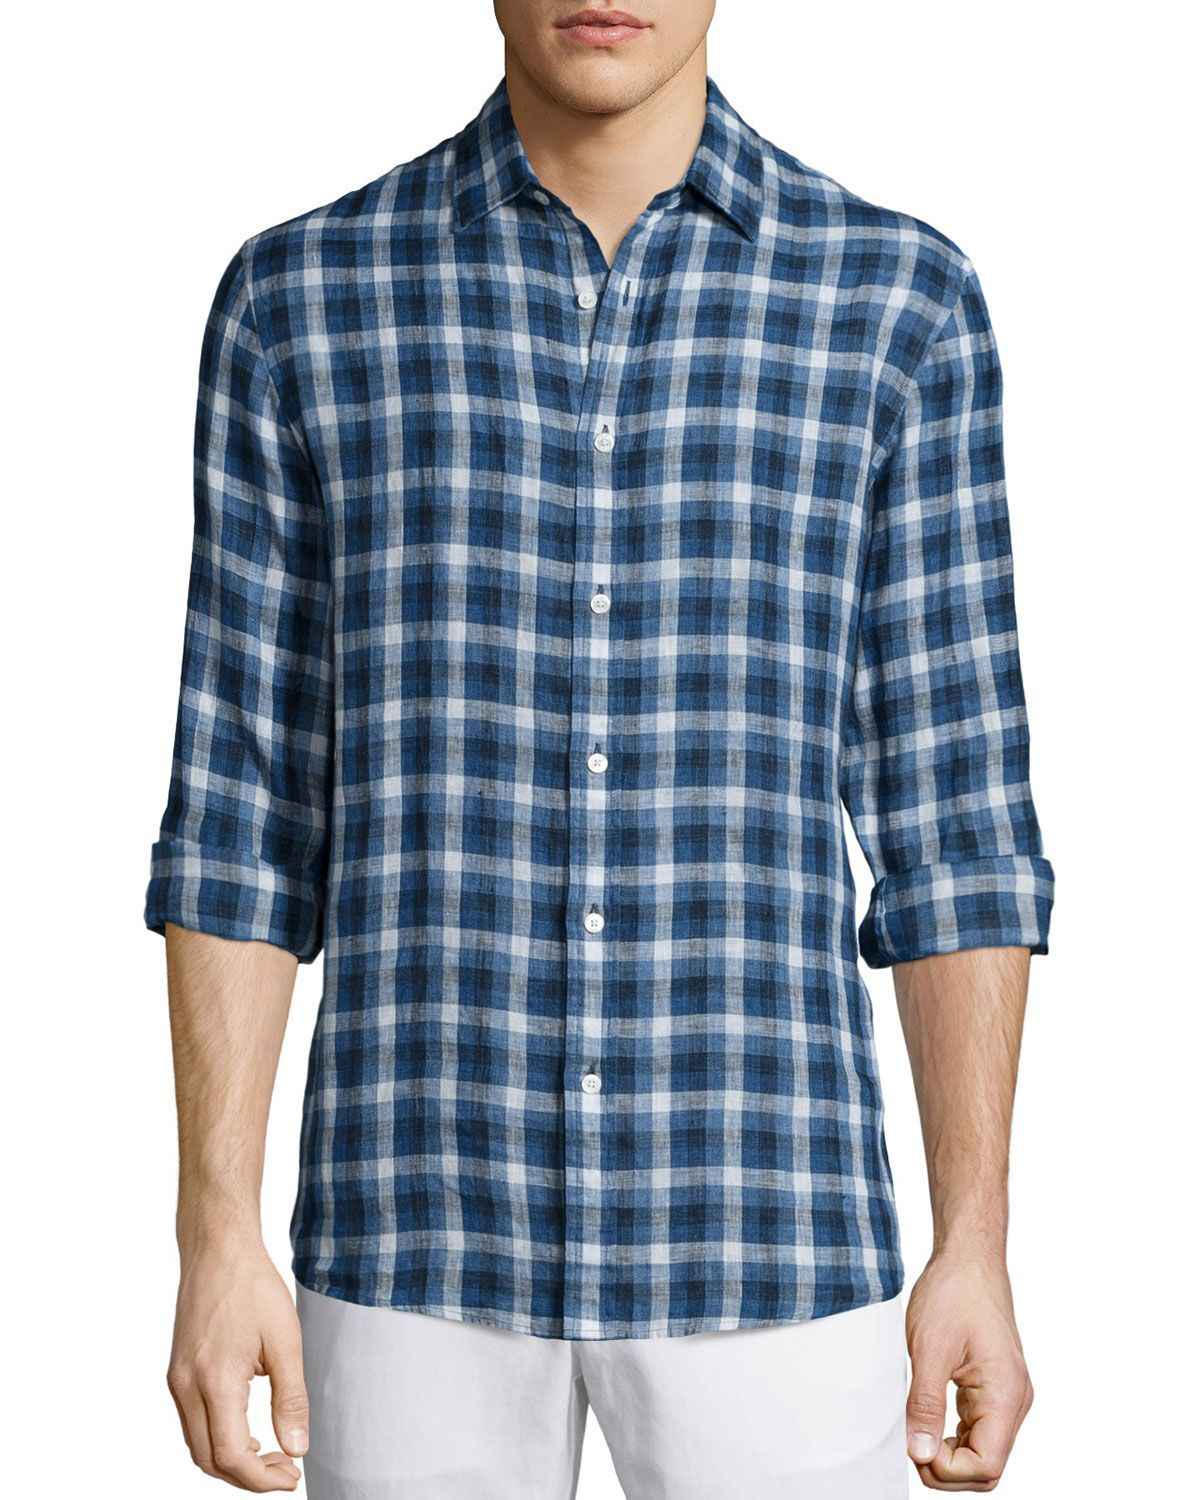 f76a3dbc772 Blue Green Check Shirt Womens - Cotswold Hire